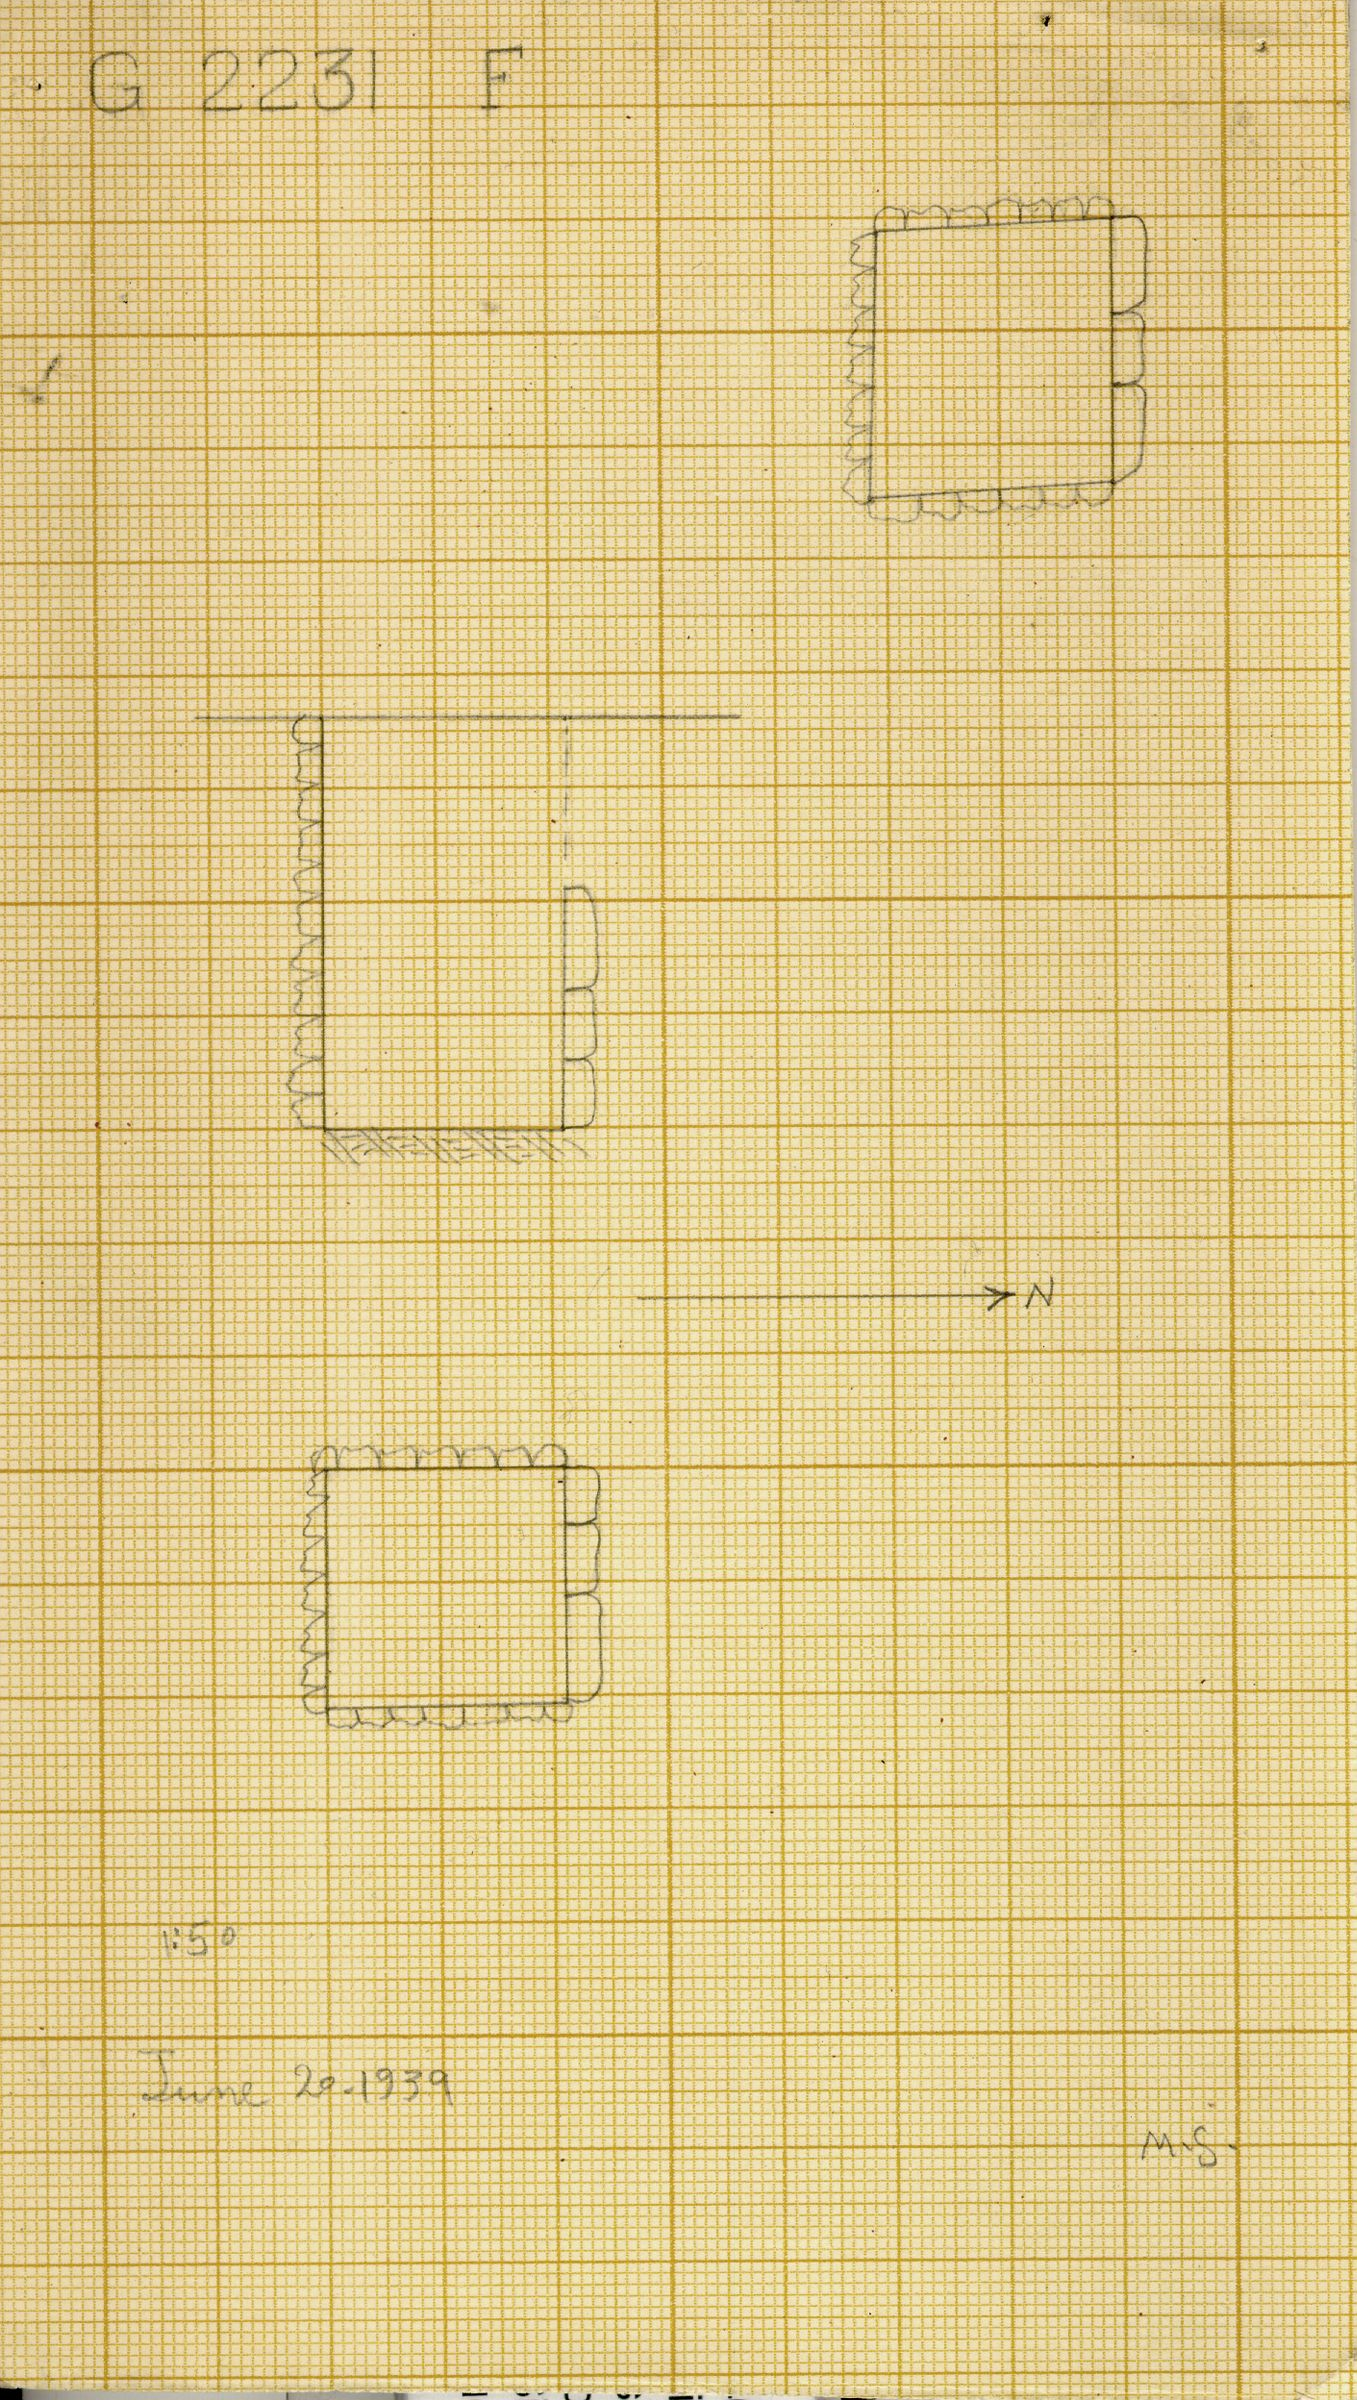 Maps and plans: G 2230+2231: G 2231, Shaft F